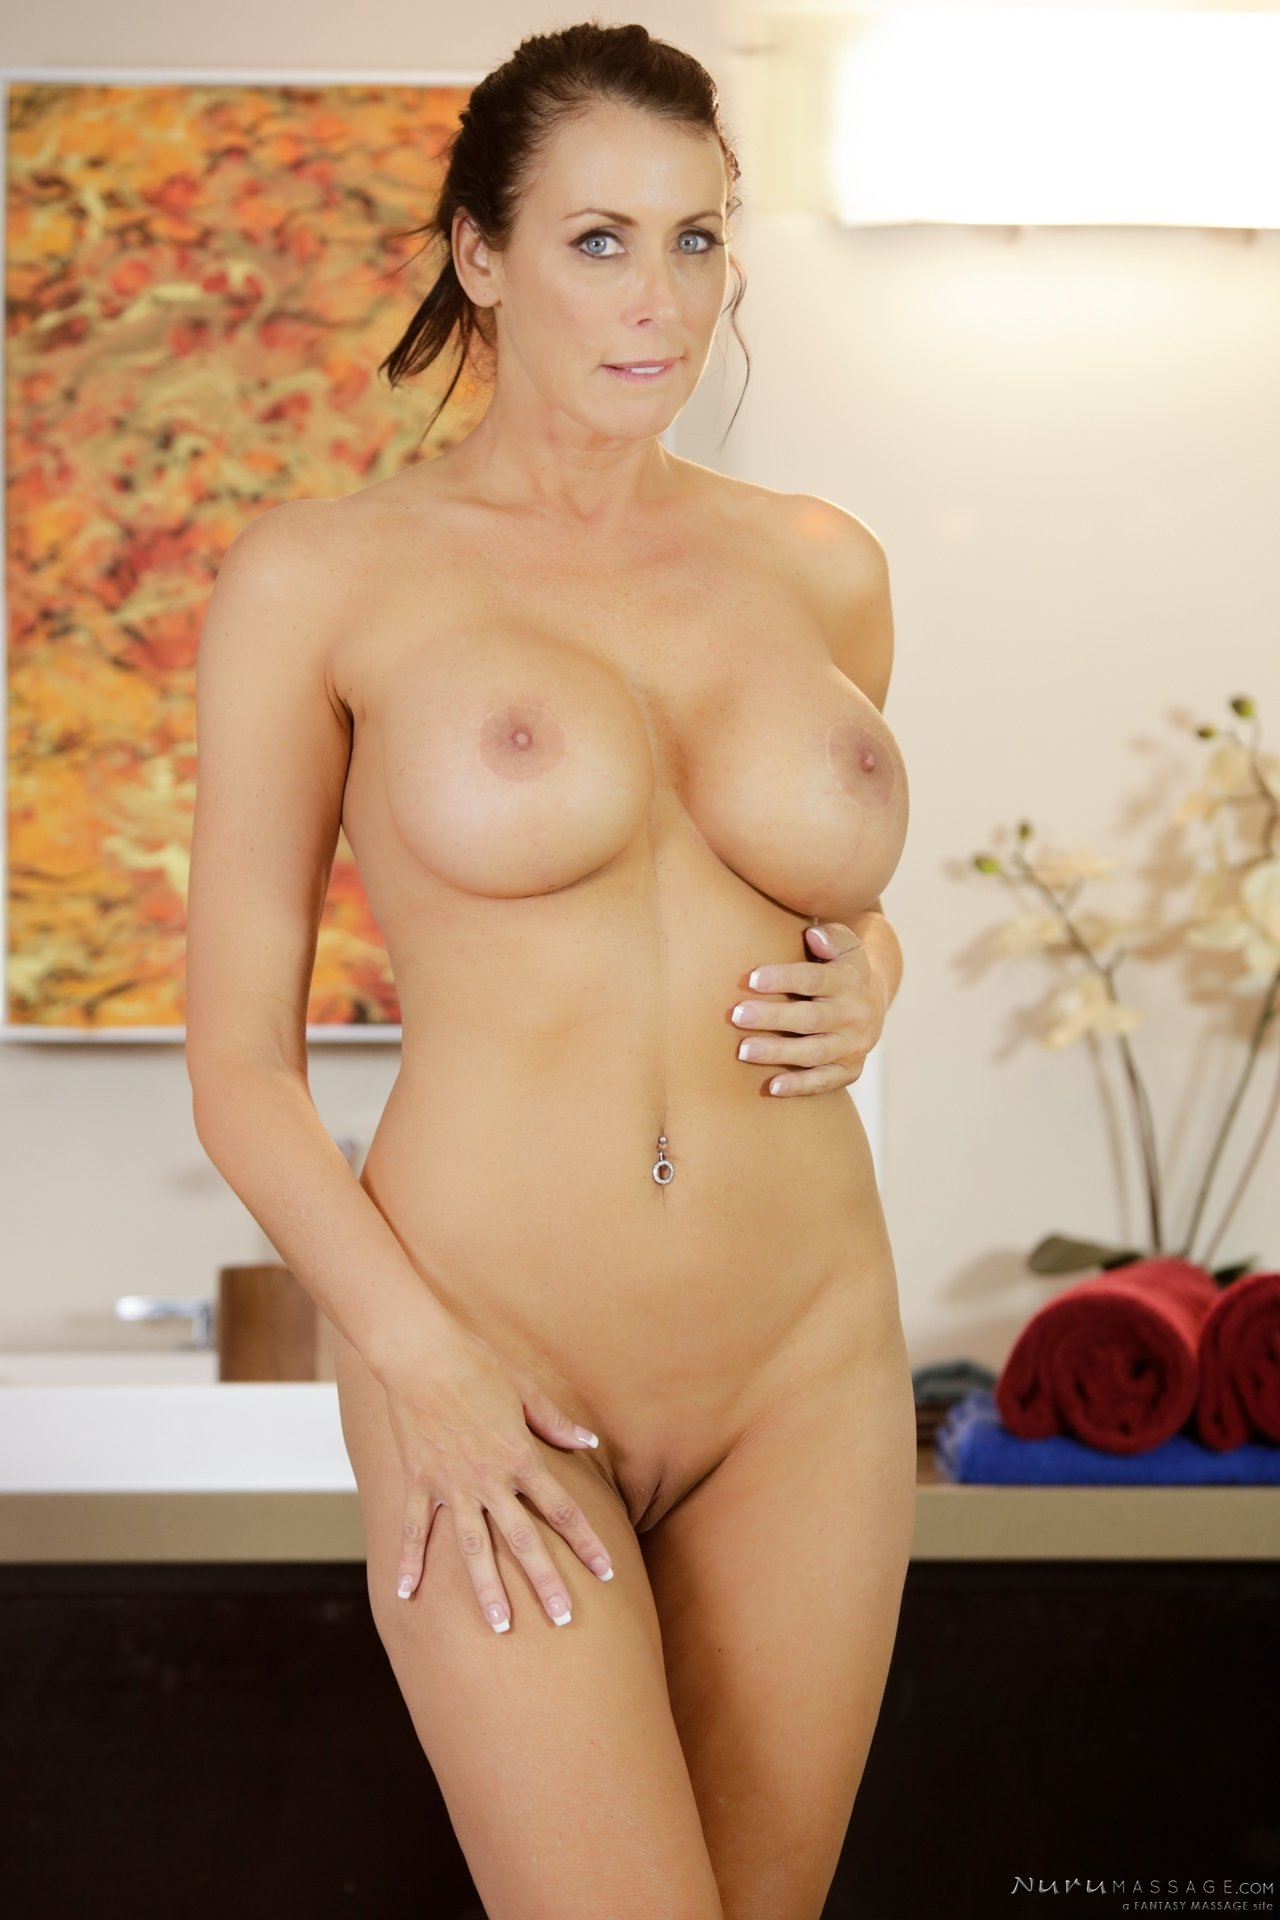 Security strip demagnetizer lucy lee pov